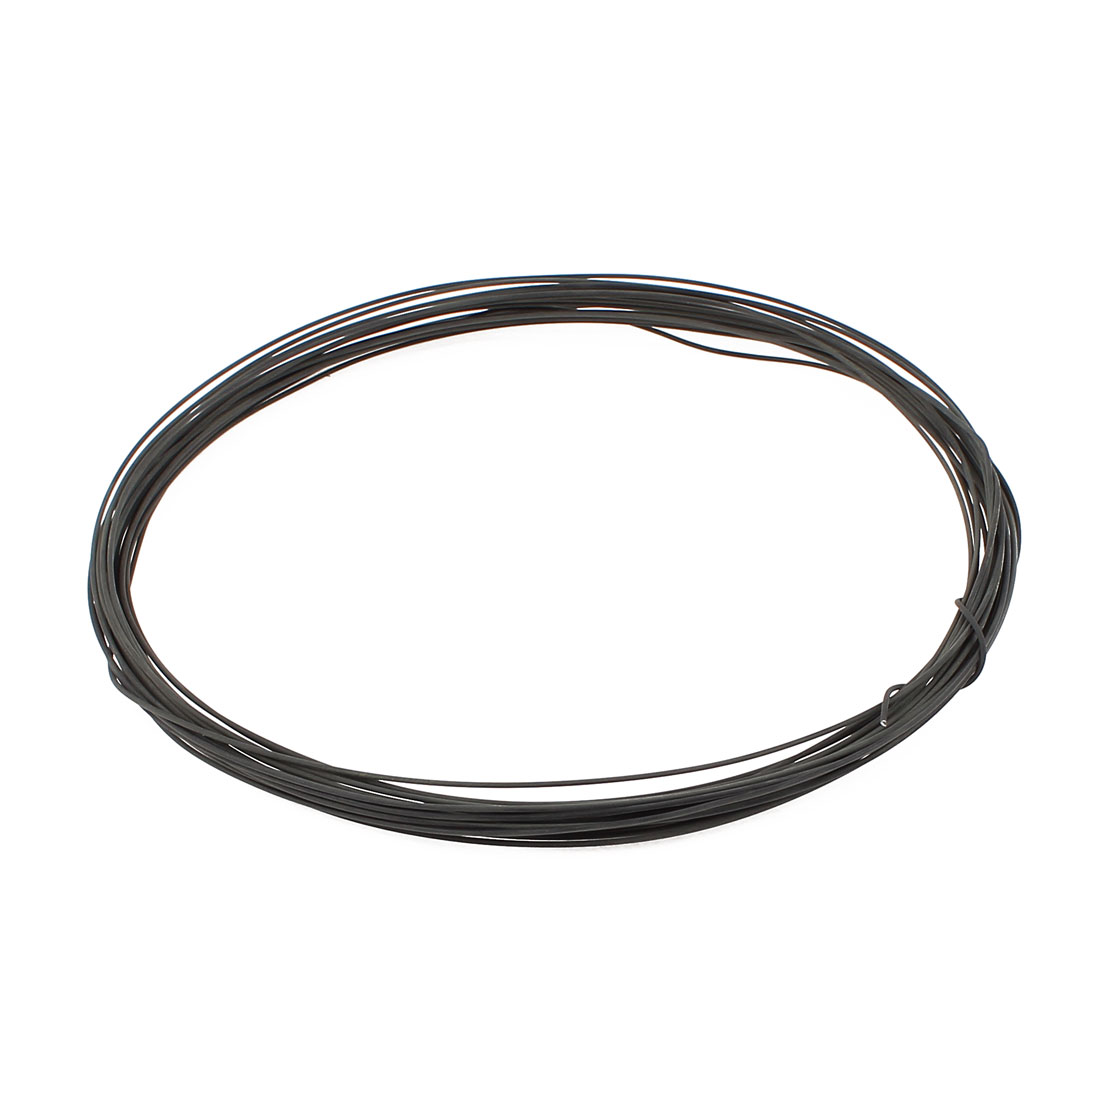 Nichrome 80 41ft 15 Gauge Awg 1 40mm Resistance Wire 0 224